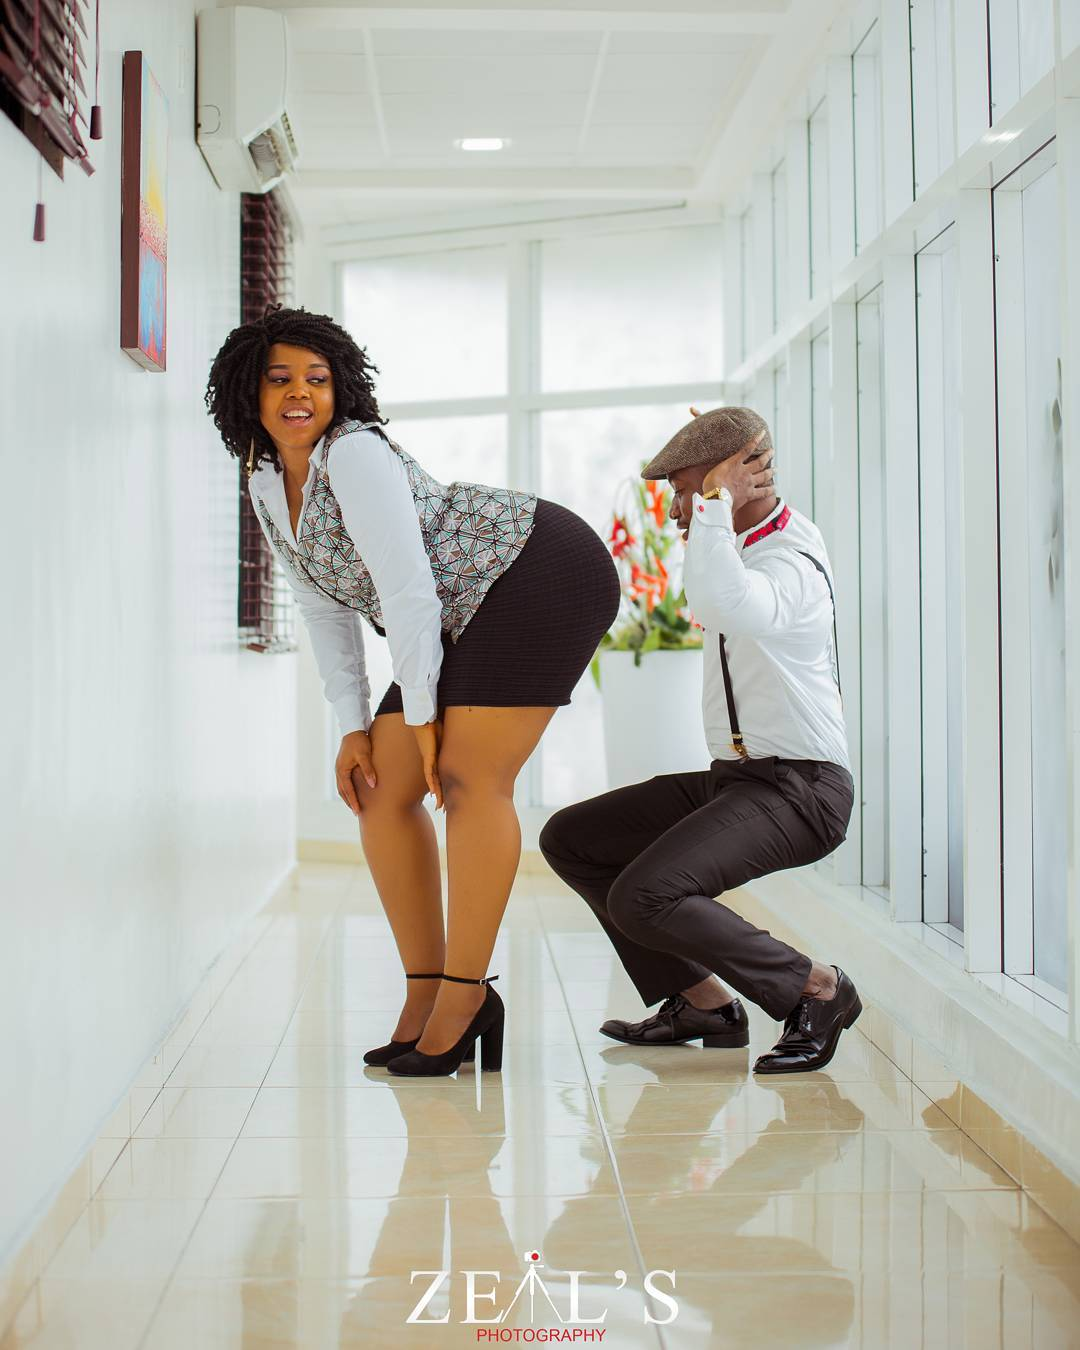 Man Gets Cozy With Fiancee's Bum In Hot Pre-wedding Session